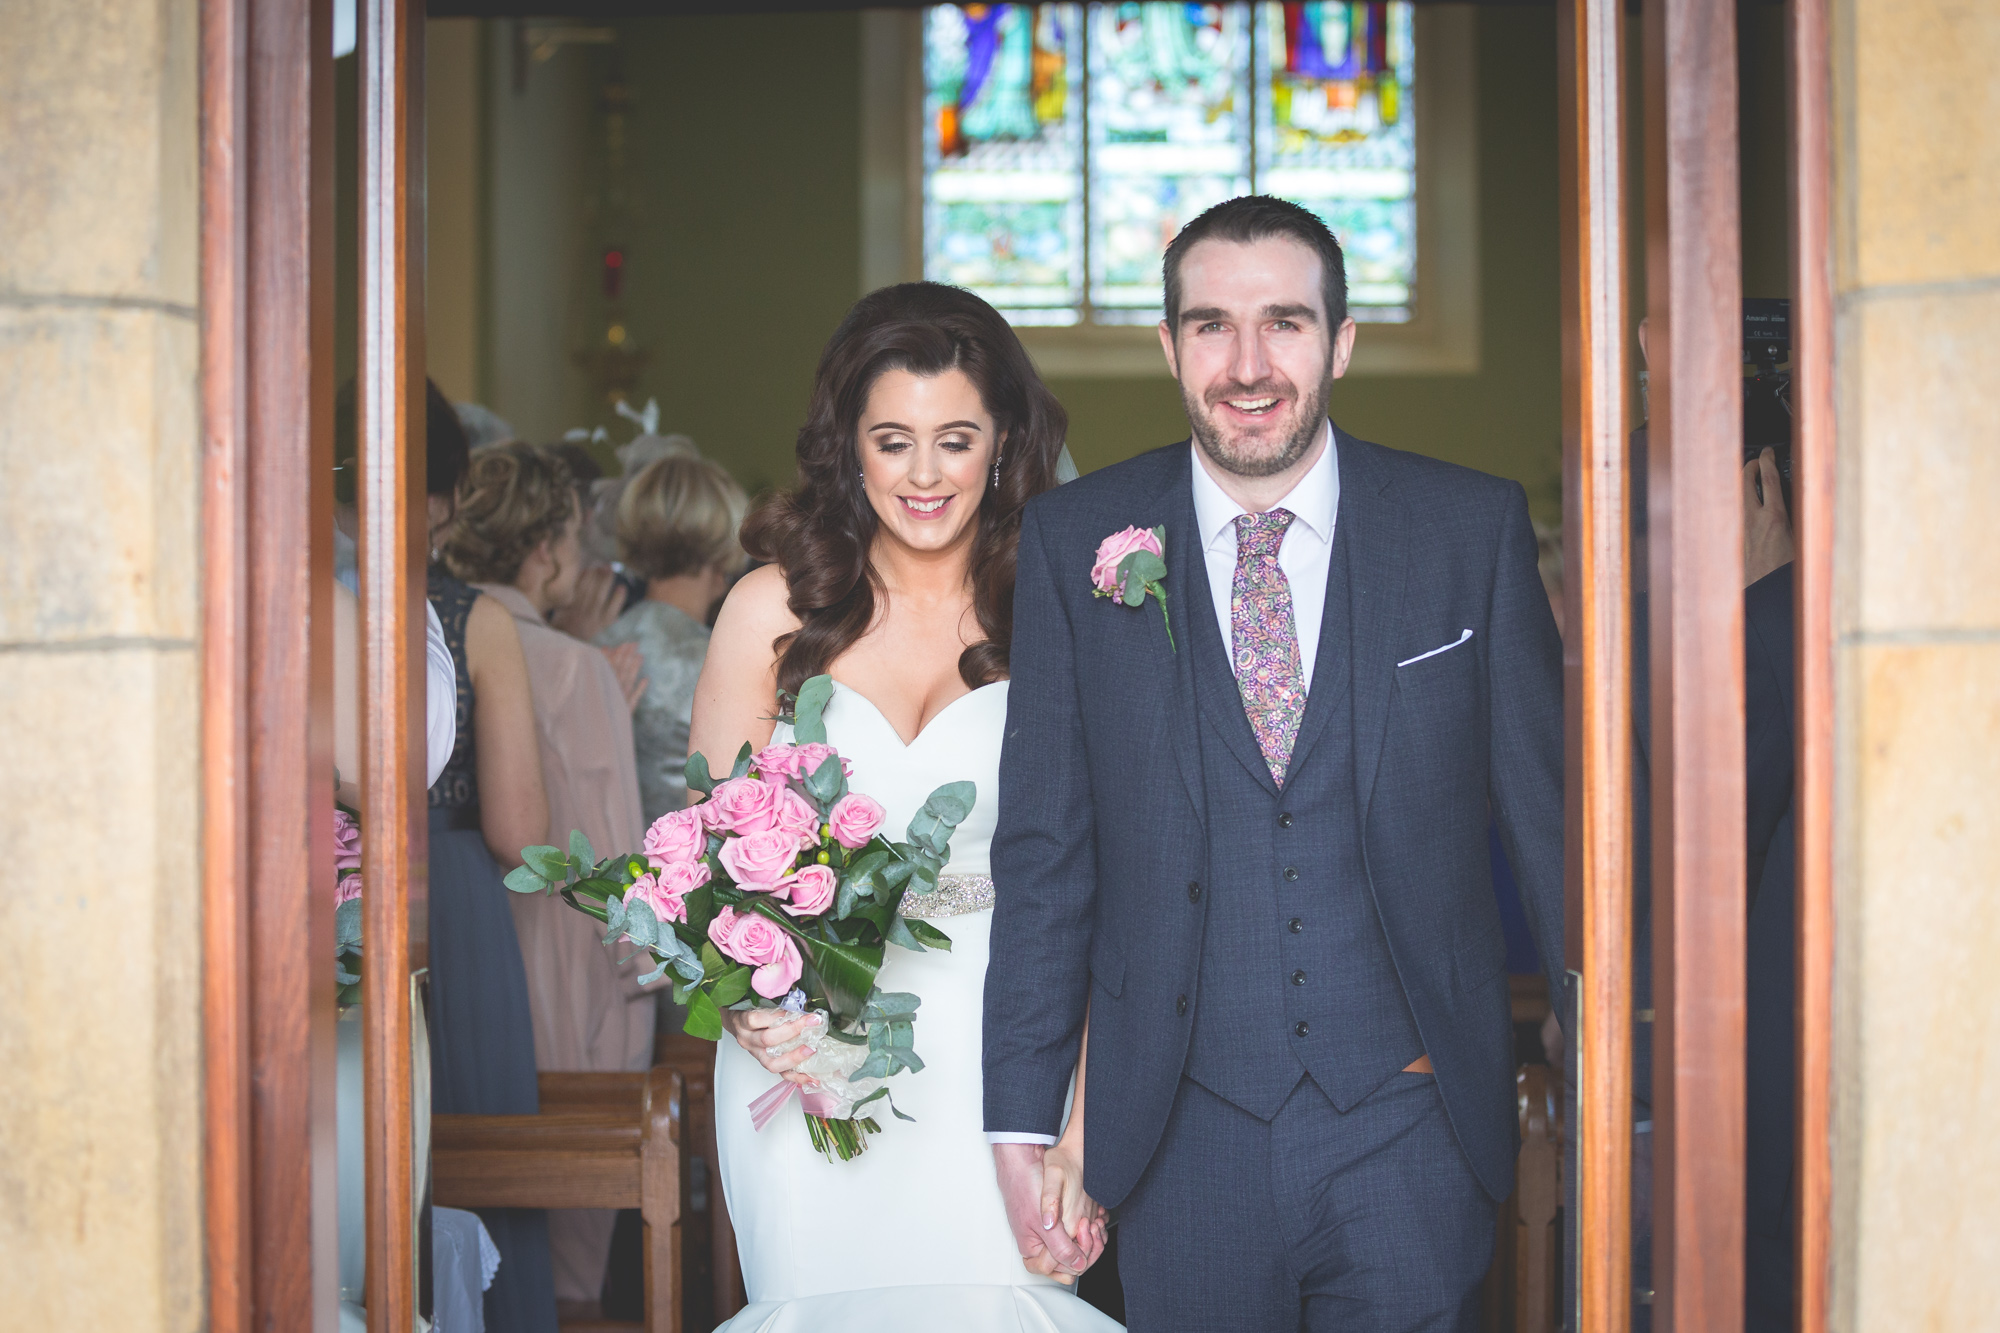 Francis&Oonagh-Ceremony-108.jpg